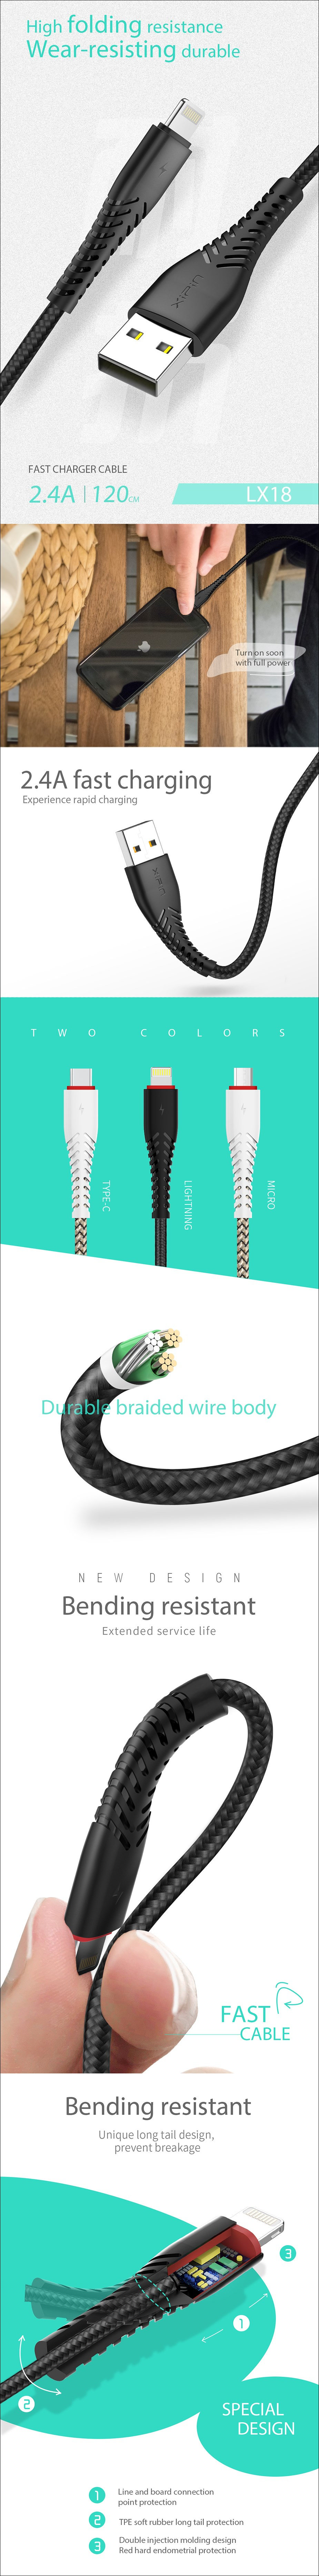 XiPin LX18 1.2m Fabric Braided Charging Cable - USB Type-C - Overview 1